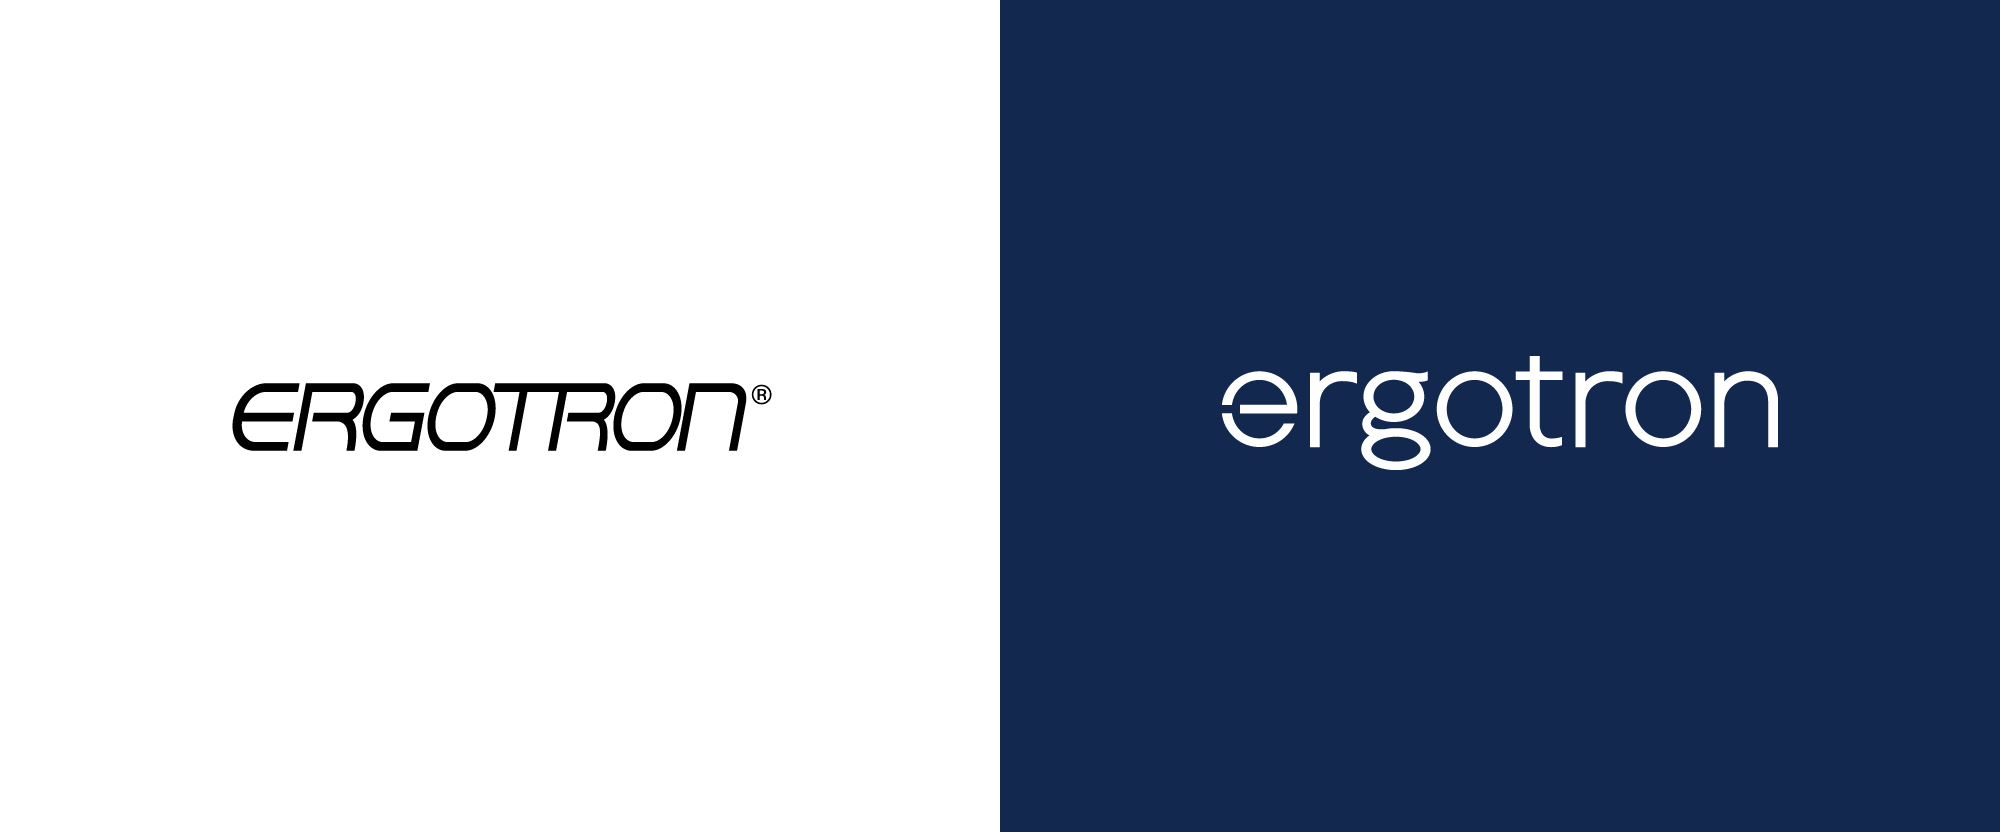 New Logo and Identity for Ergotron by Friends & Neighbors